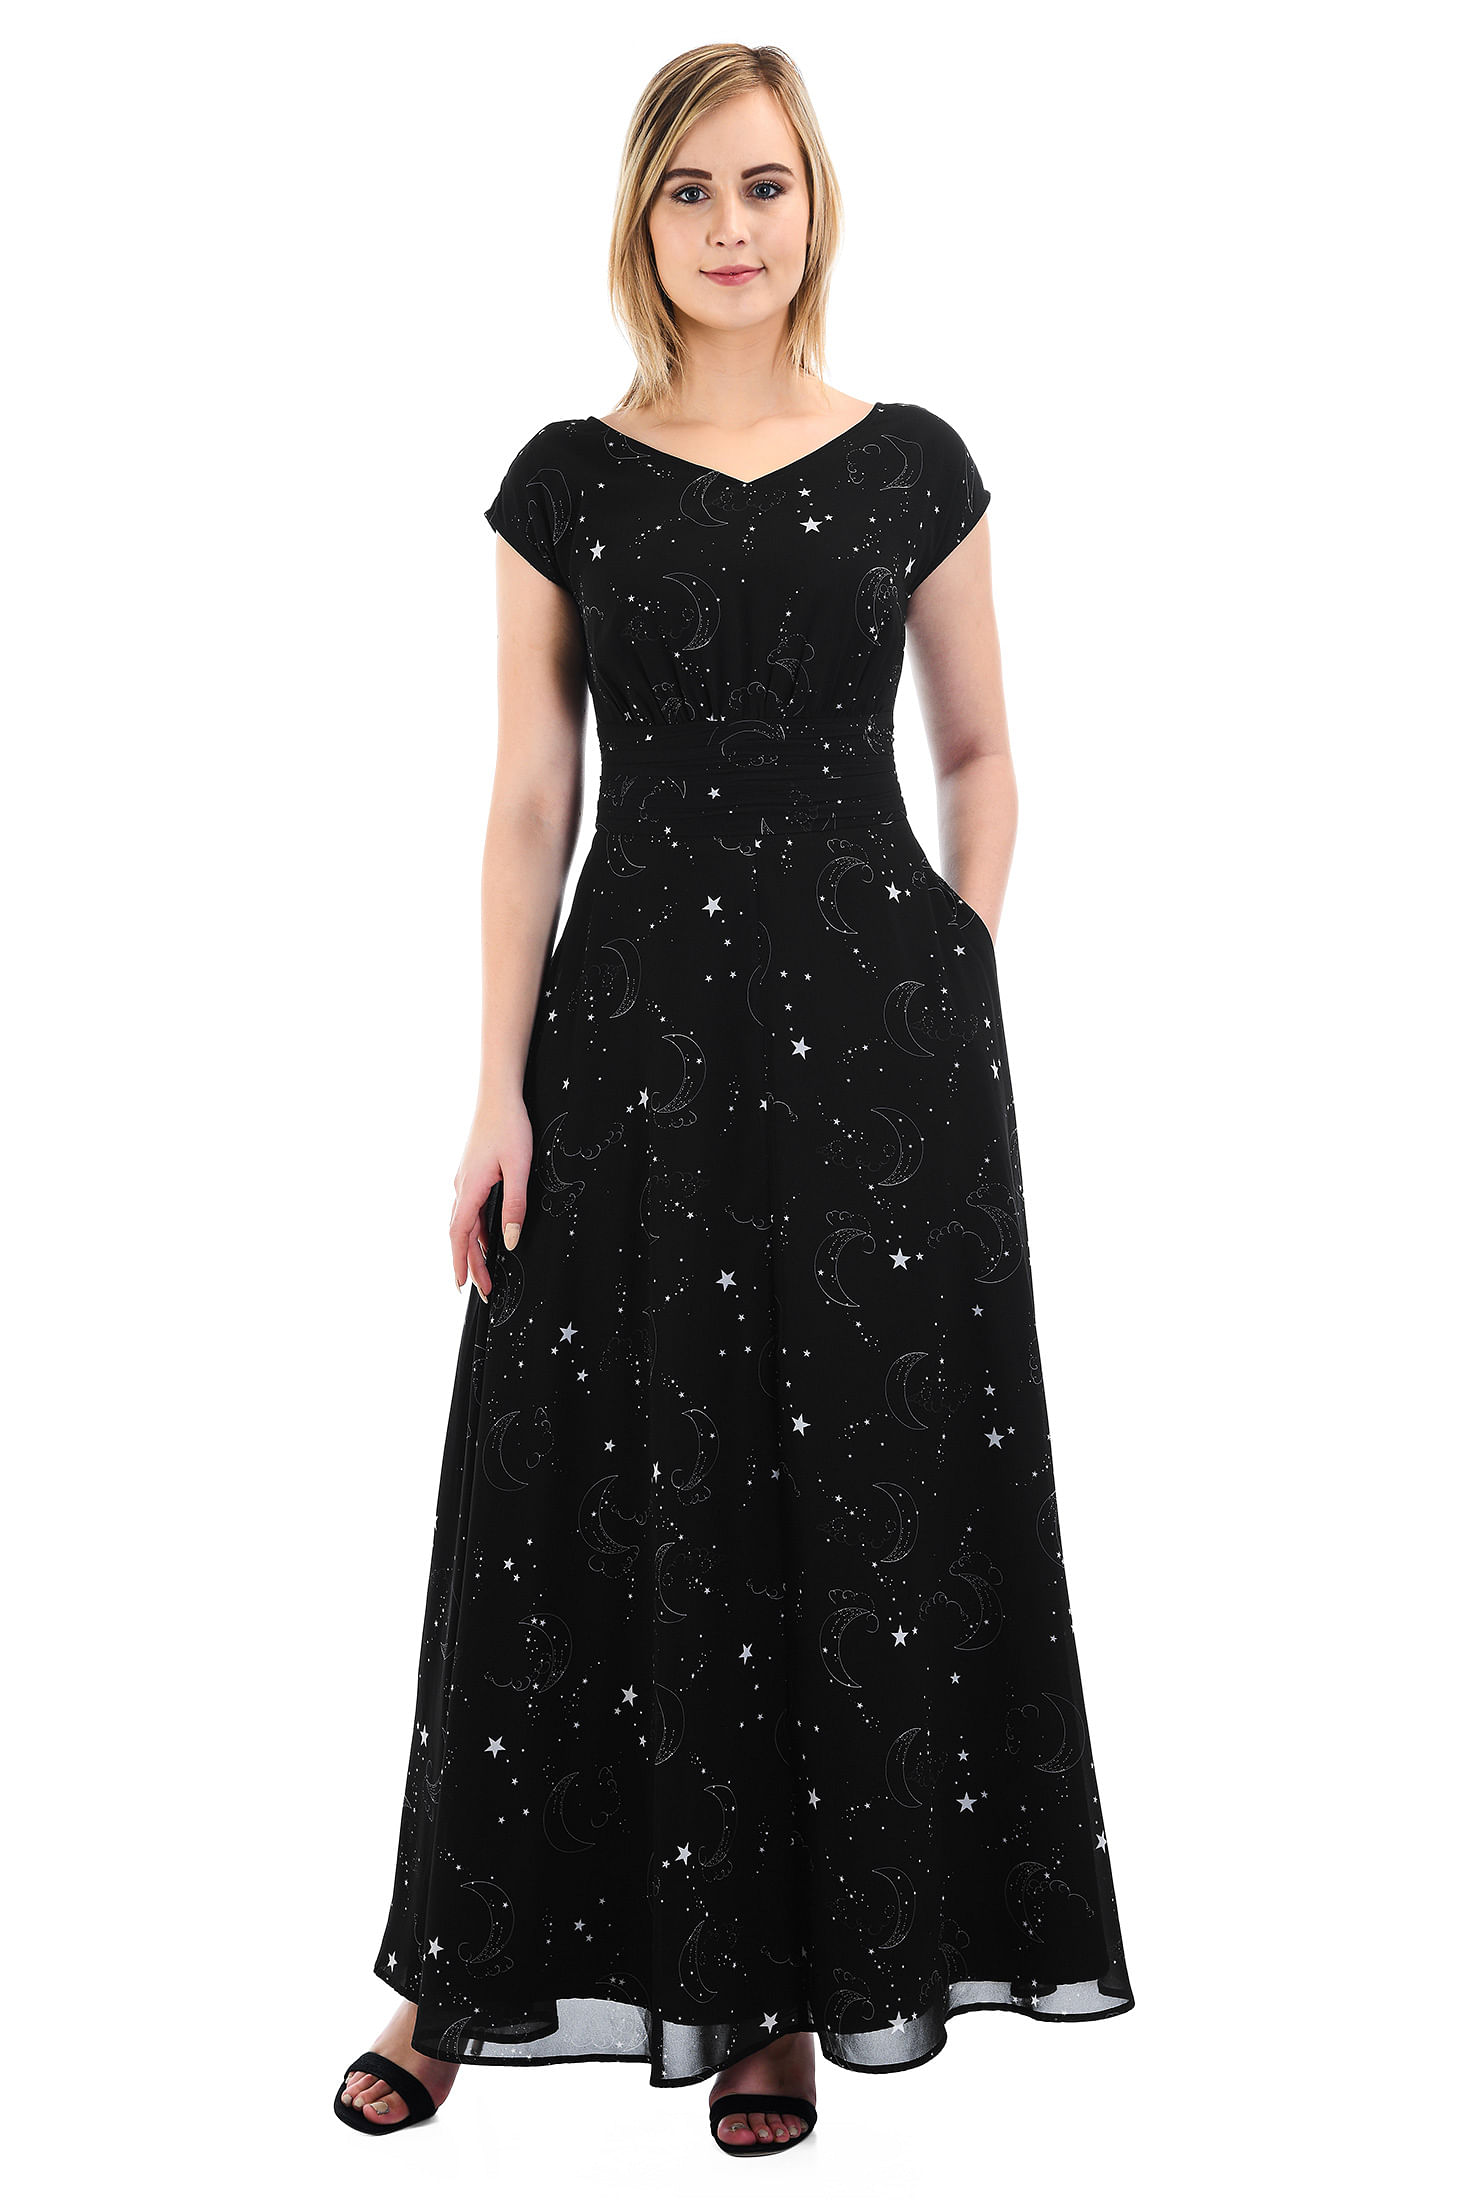 5e9d44336841 Black And White dresses, Dolman Cap Sleeve Dresses, fit-and-flare